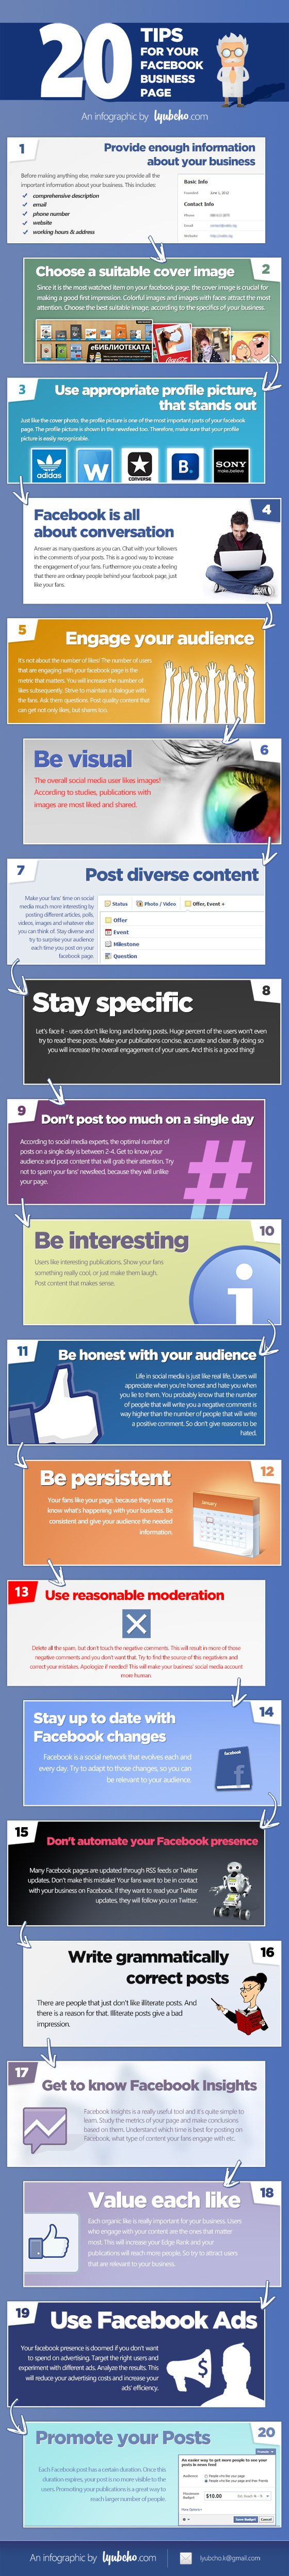 Facebook-Business-Page-Tips-and-Advice_Infographic